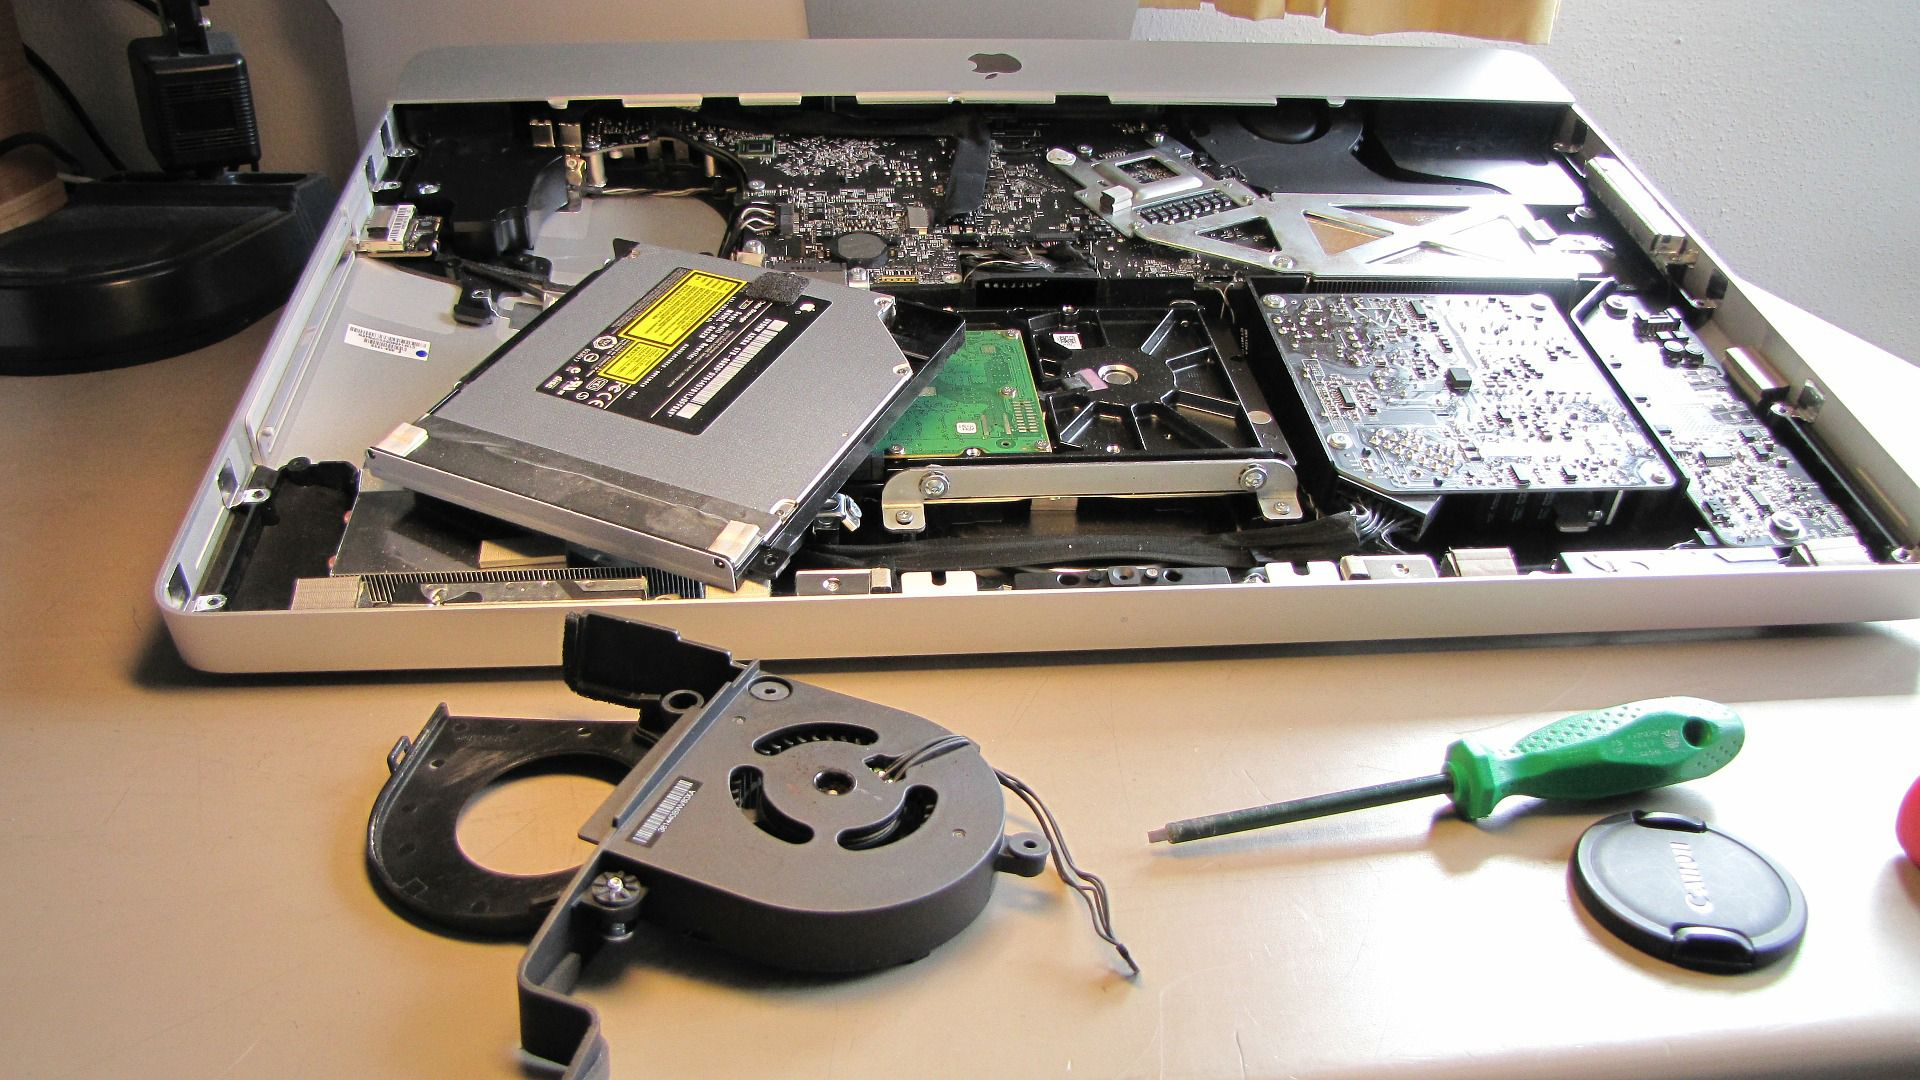 Upgrade The Hard Drive In 2009 And Later Imacs